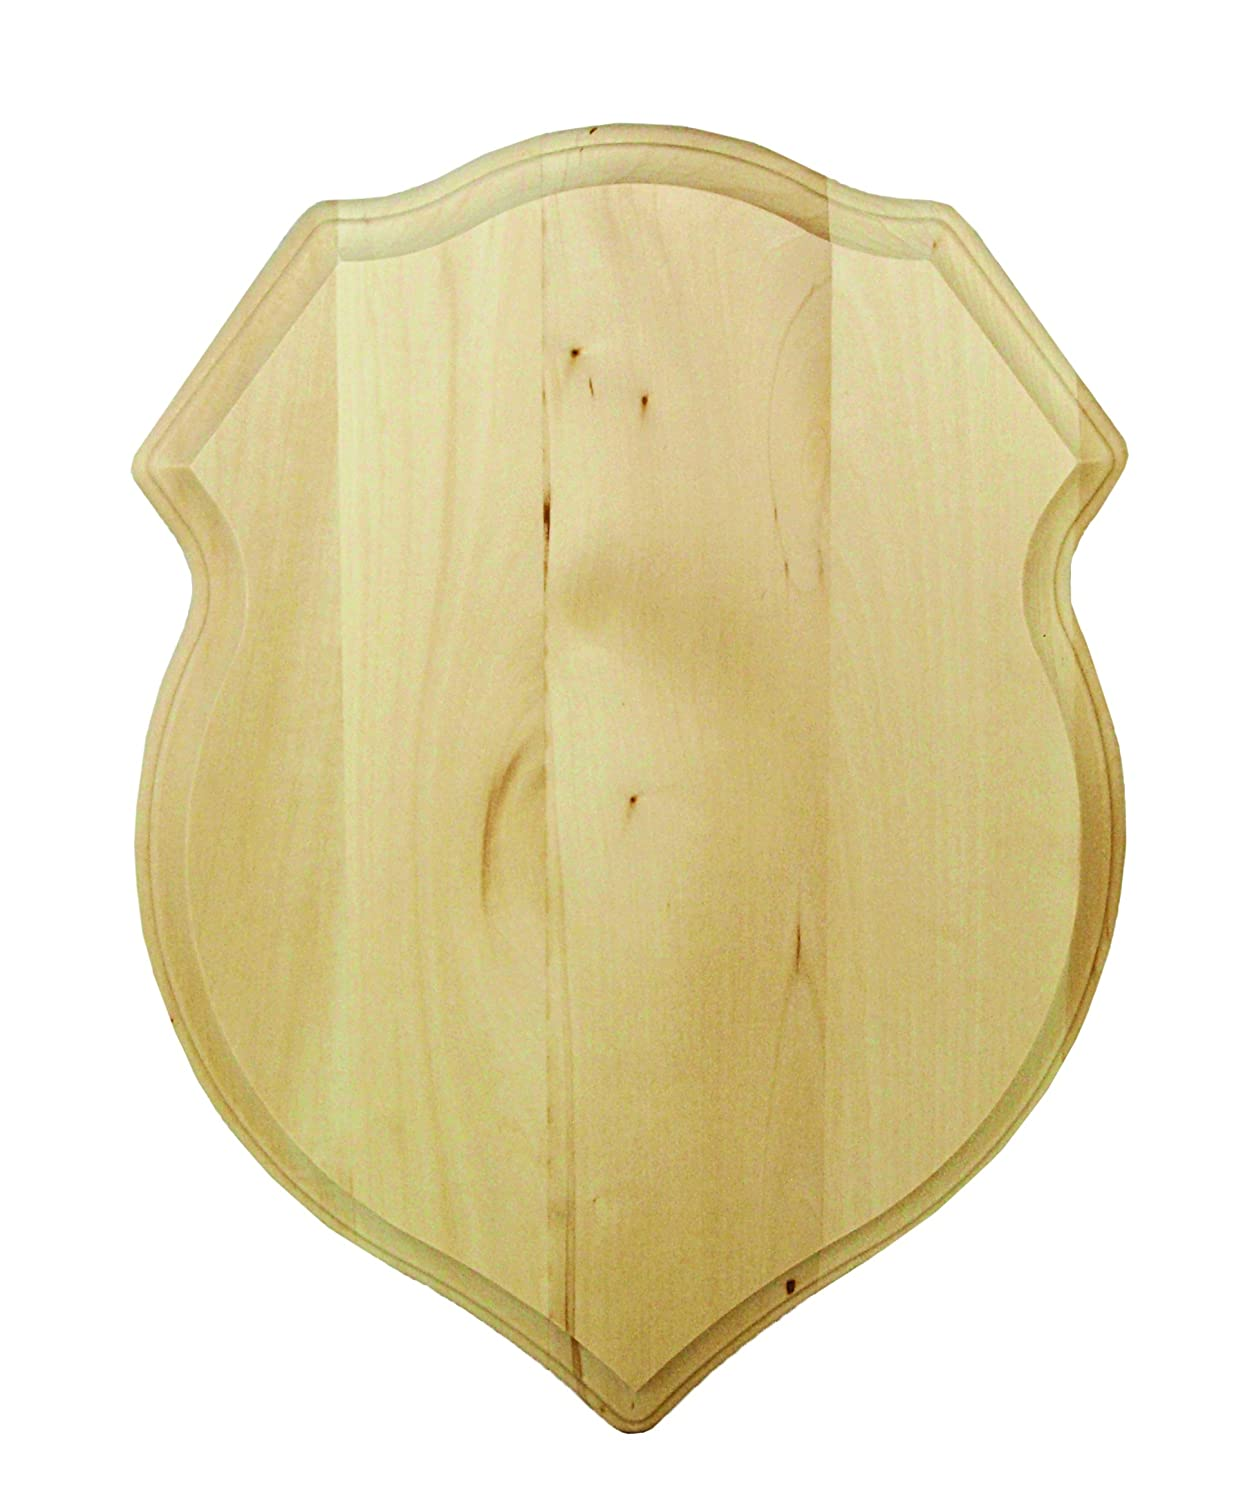 Walnut Hollow 38824 Basswood Shield Plaque, 12 by 16 12 by 16